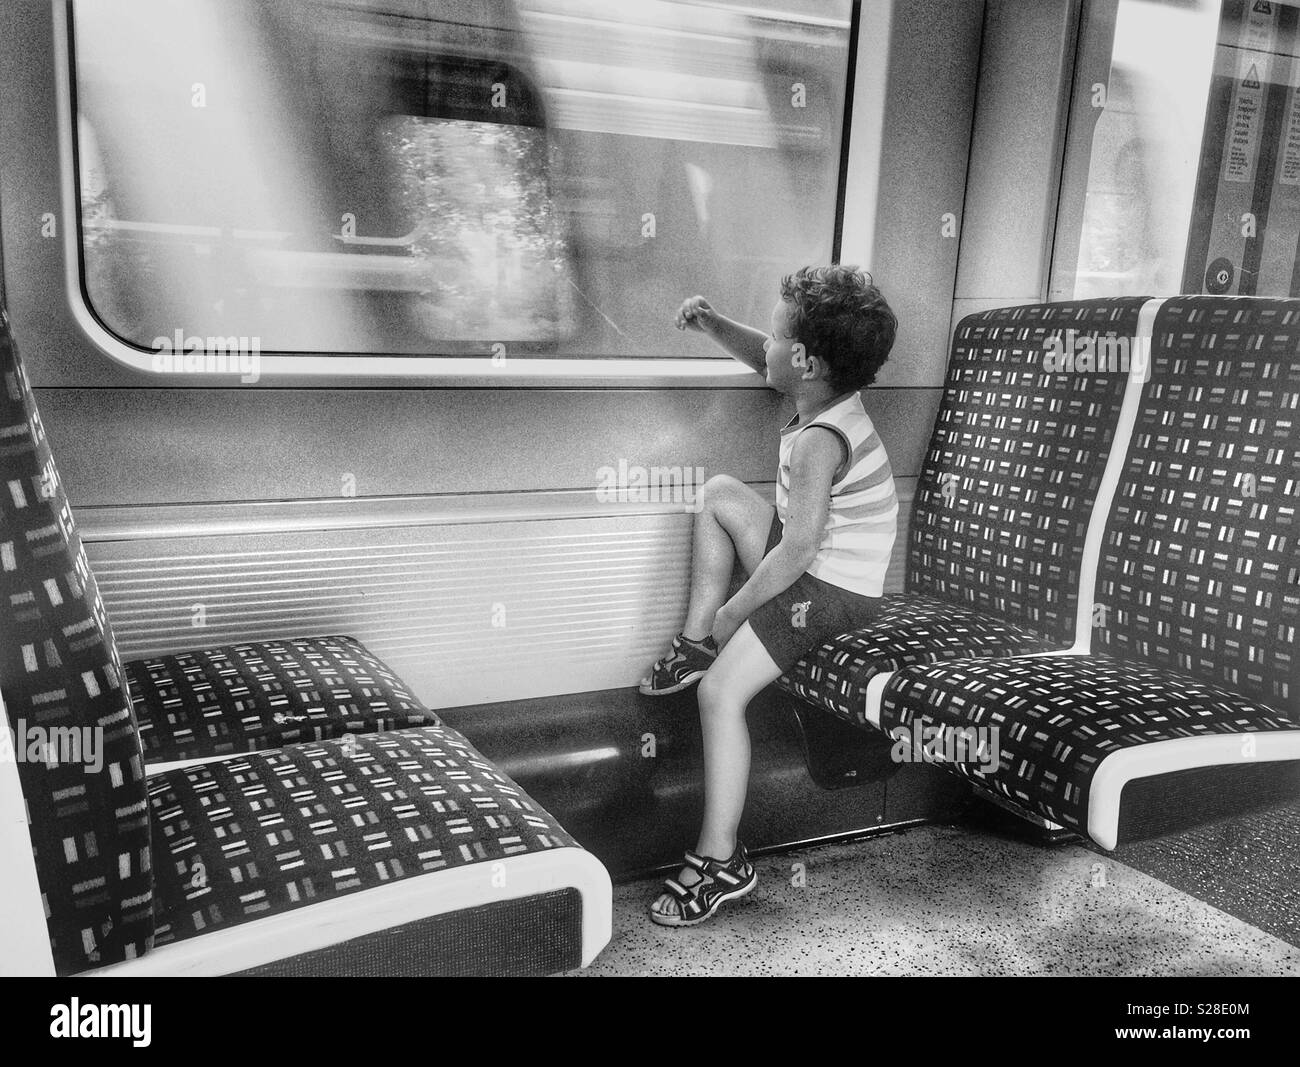 A boy looking through the window in the train - Stock Image